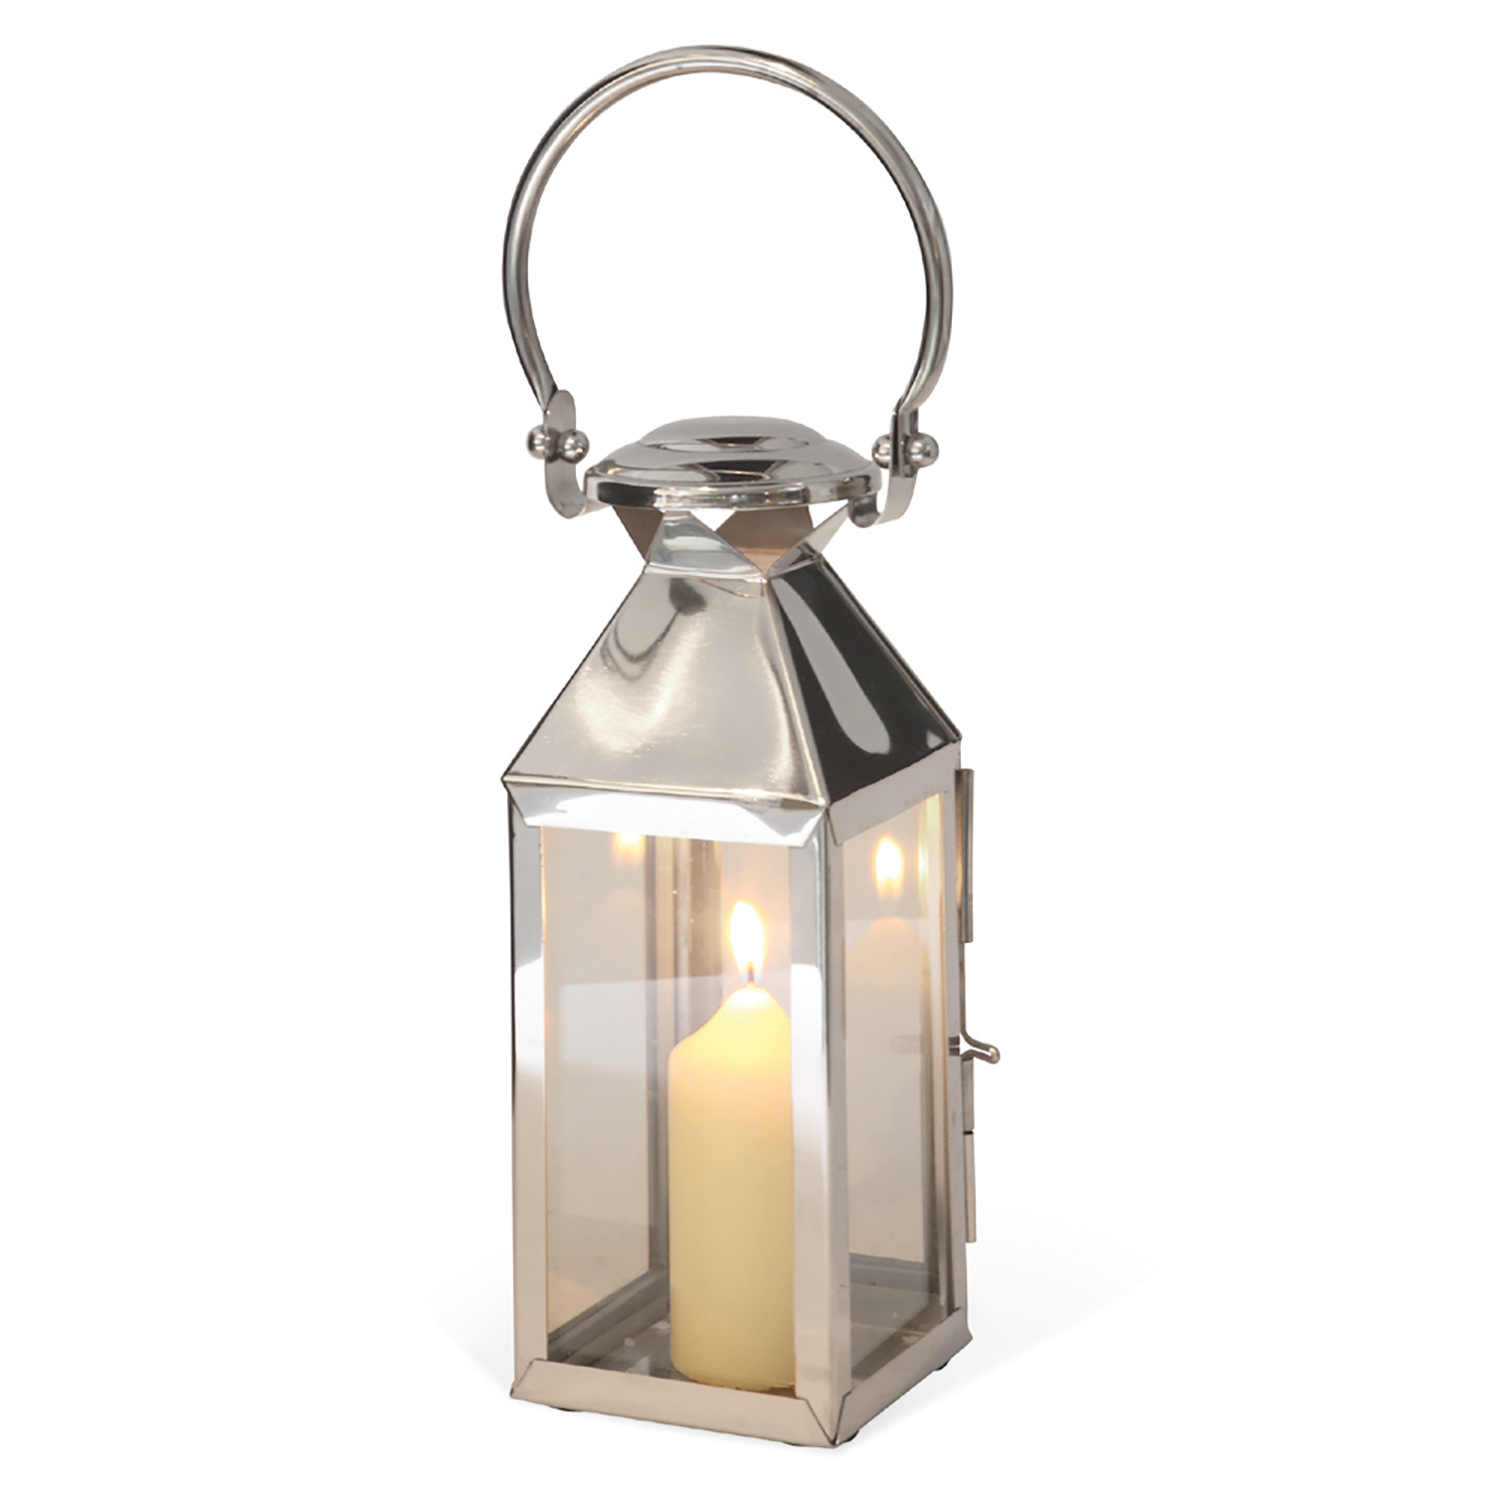 Culinary Concepts – Extra Small Stainless Steel Freestanding Chelsea Lantern